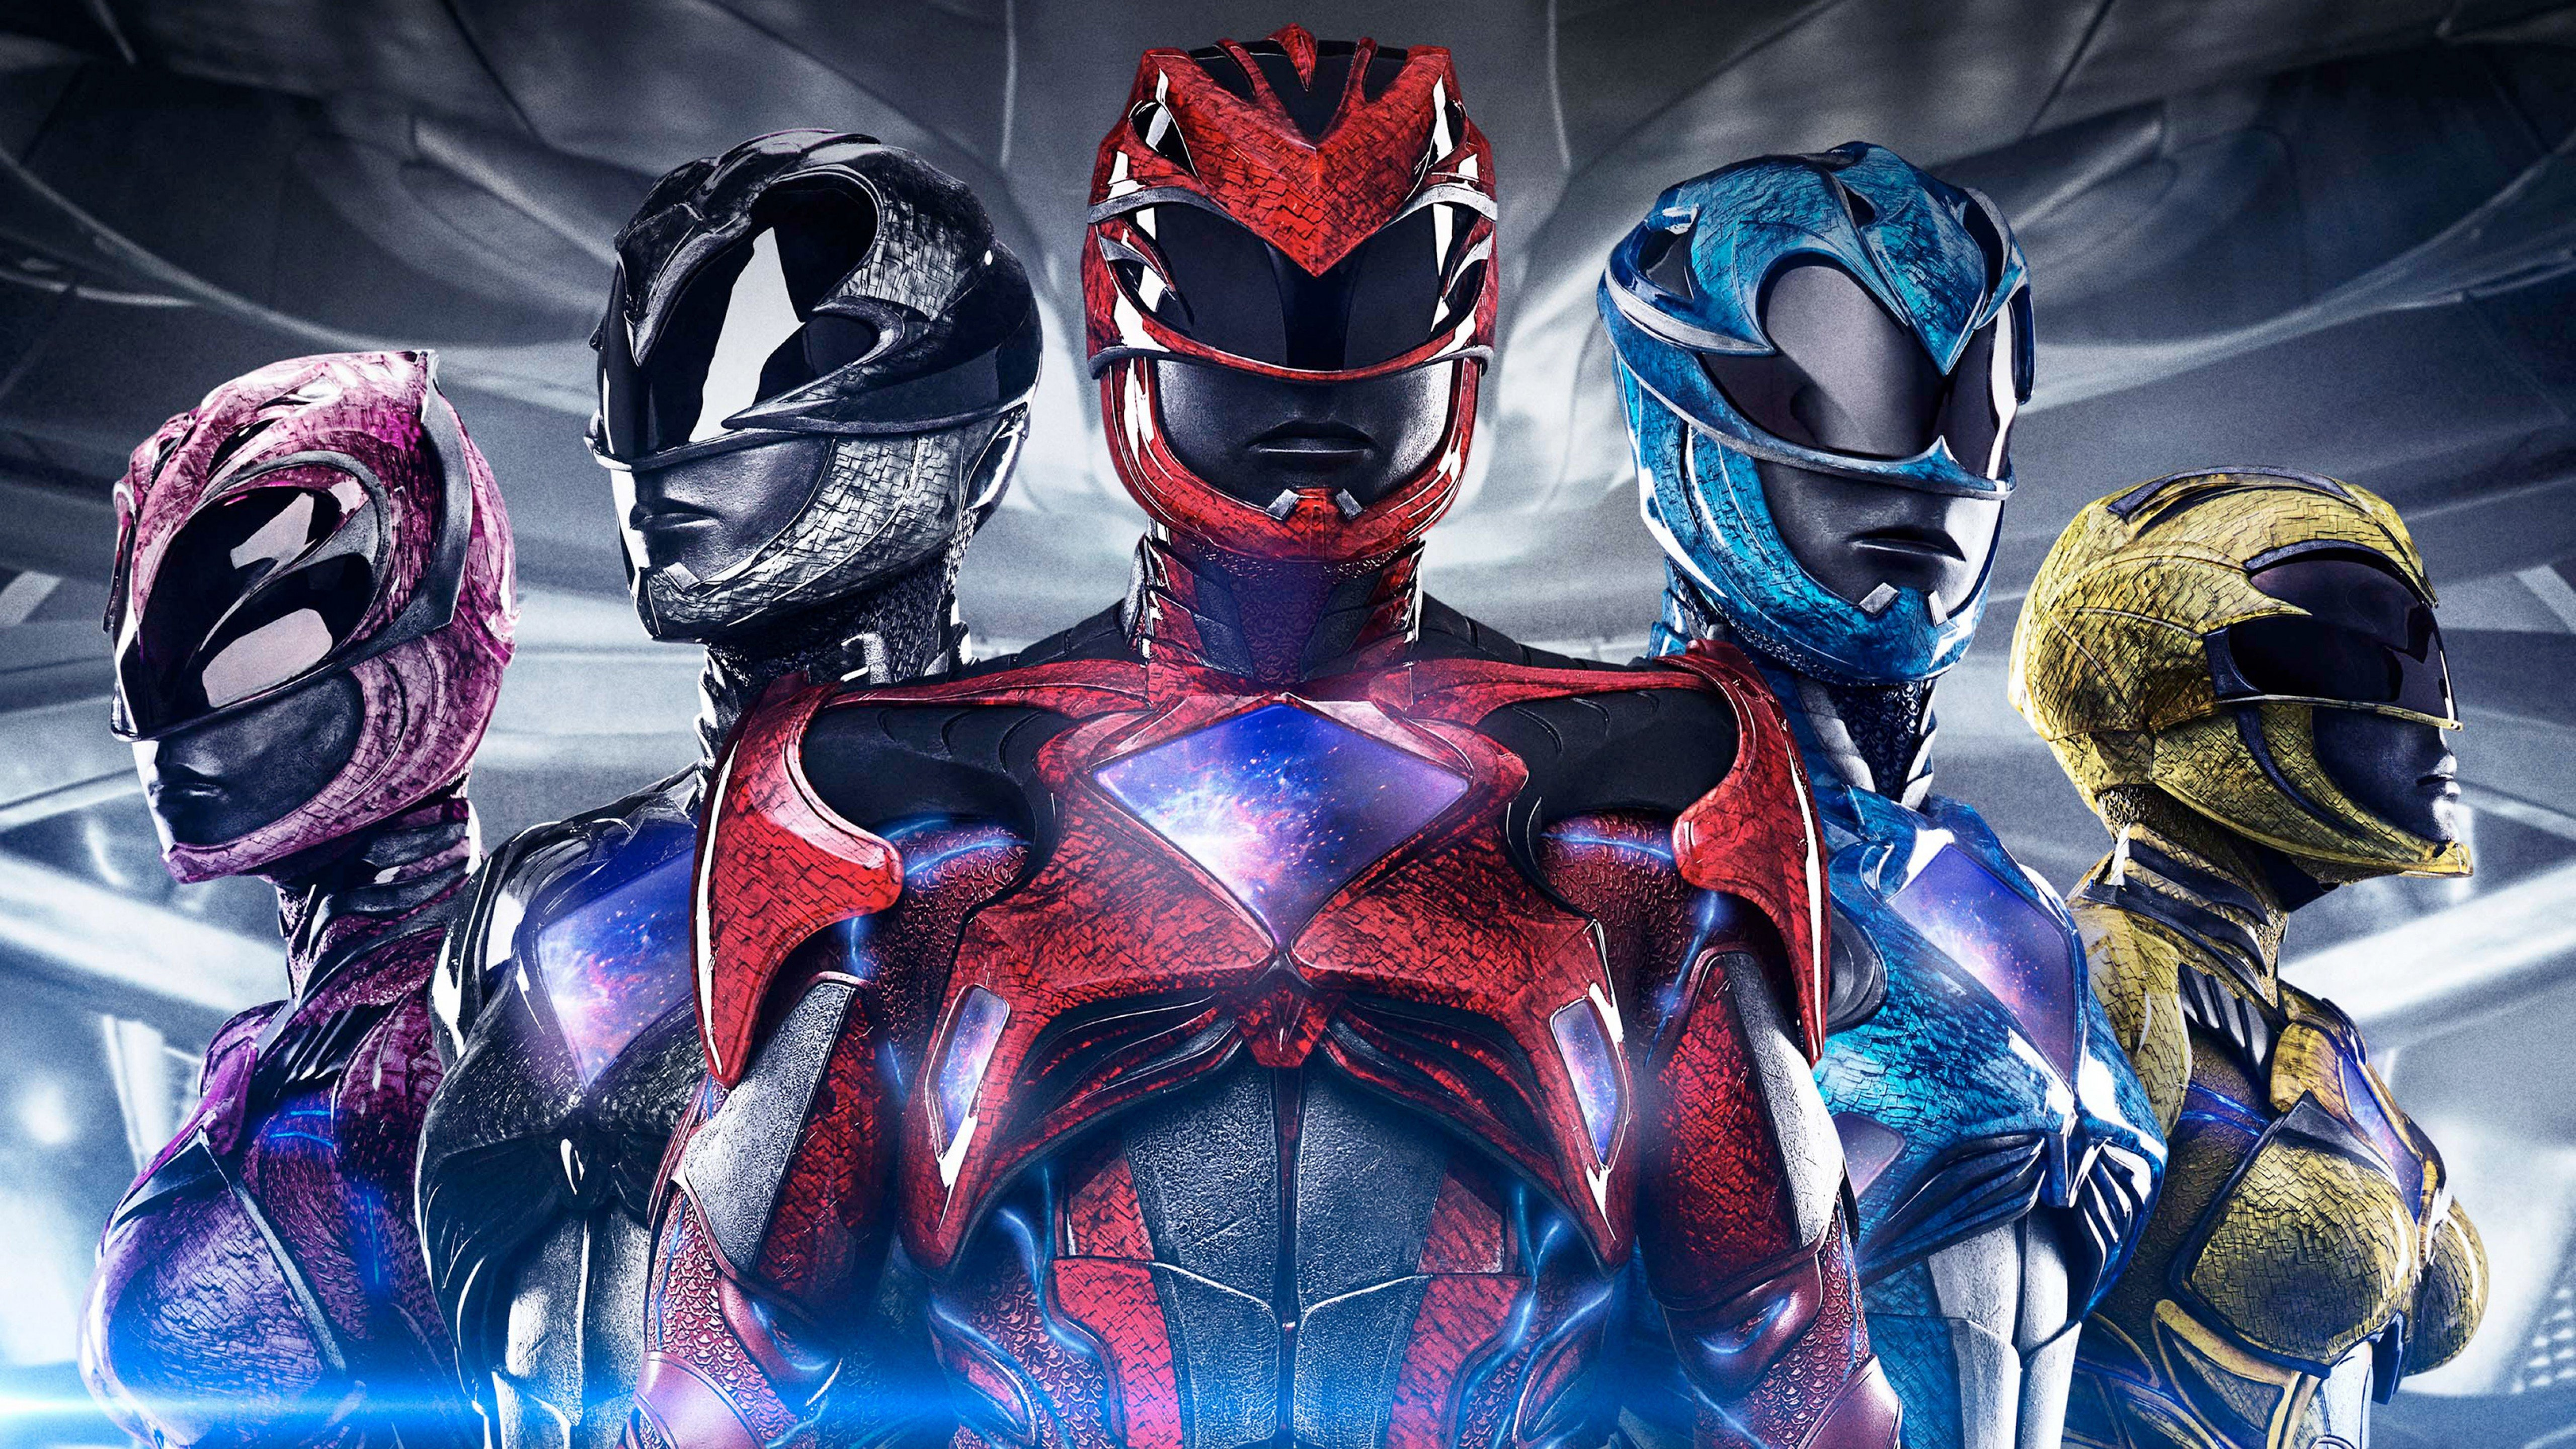 50 Power Rangers 2017 HD Wallpapers Background Images 5120x2880